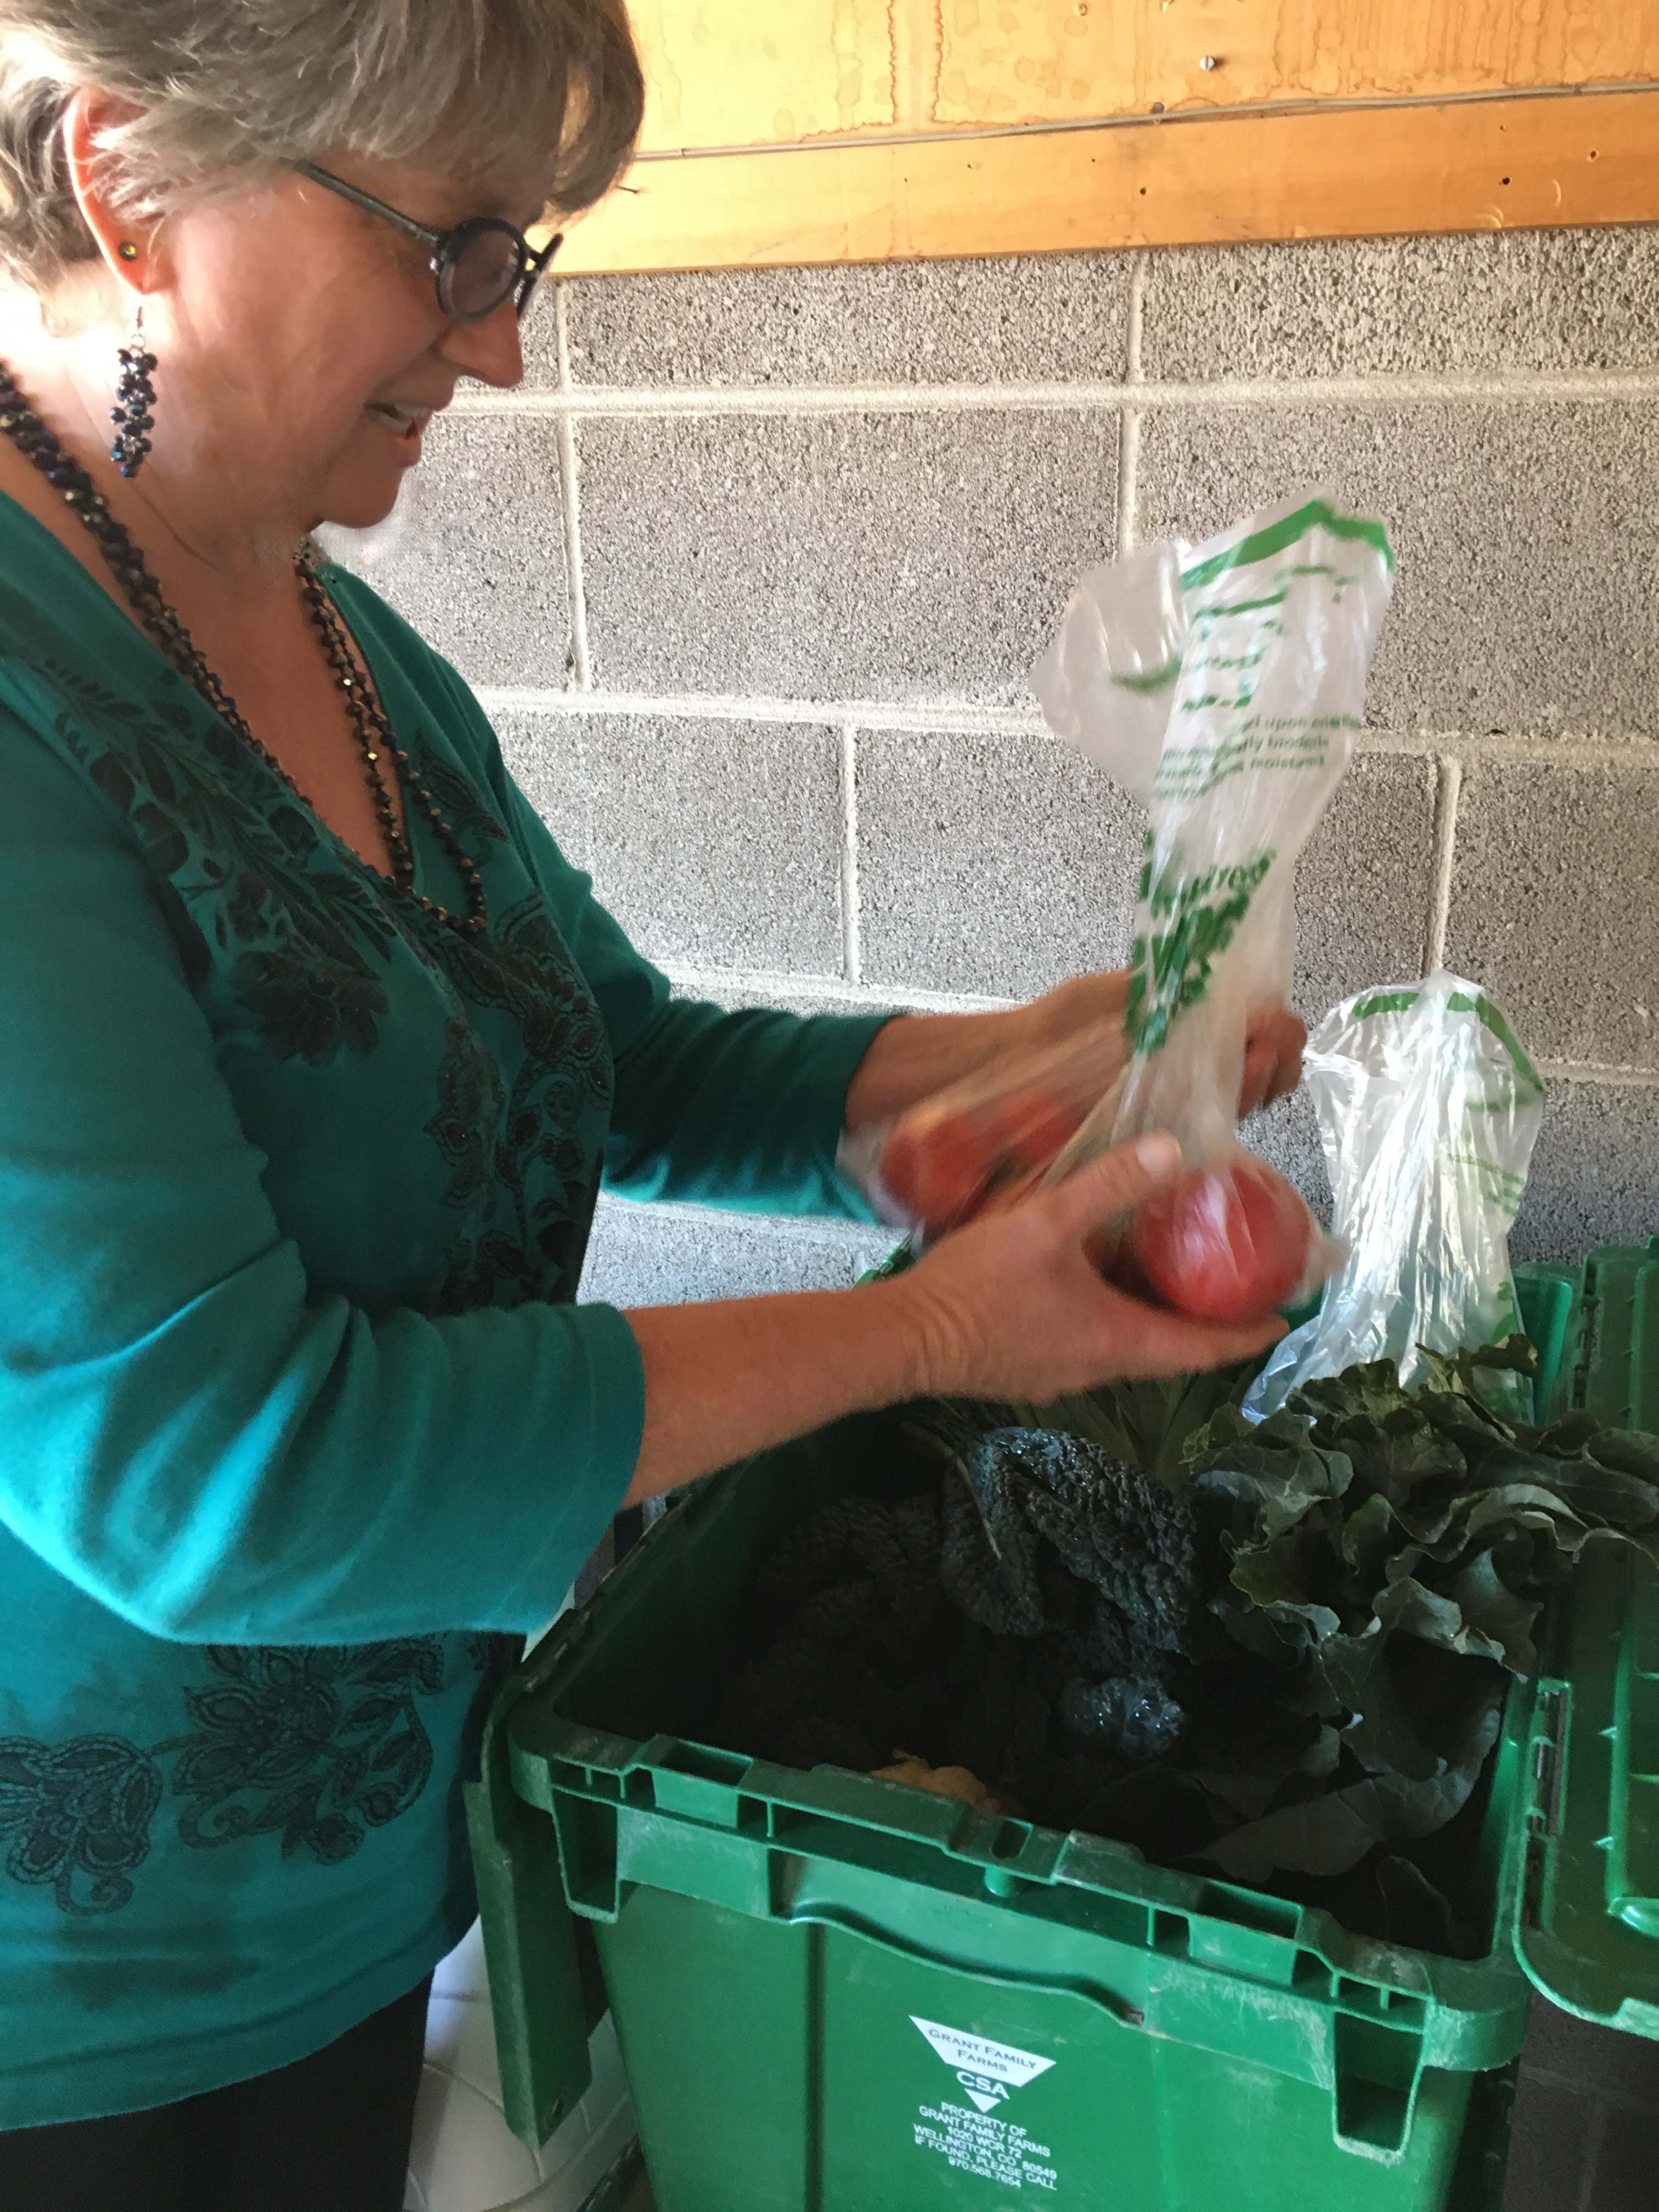 woman holding vegetables and unpacking them from bin